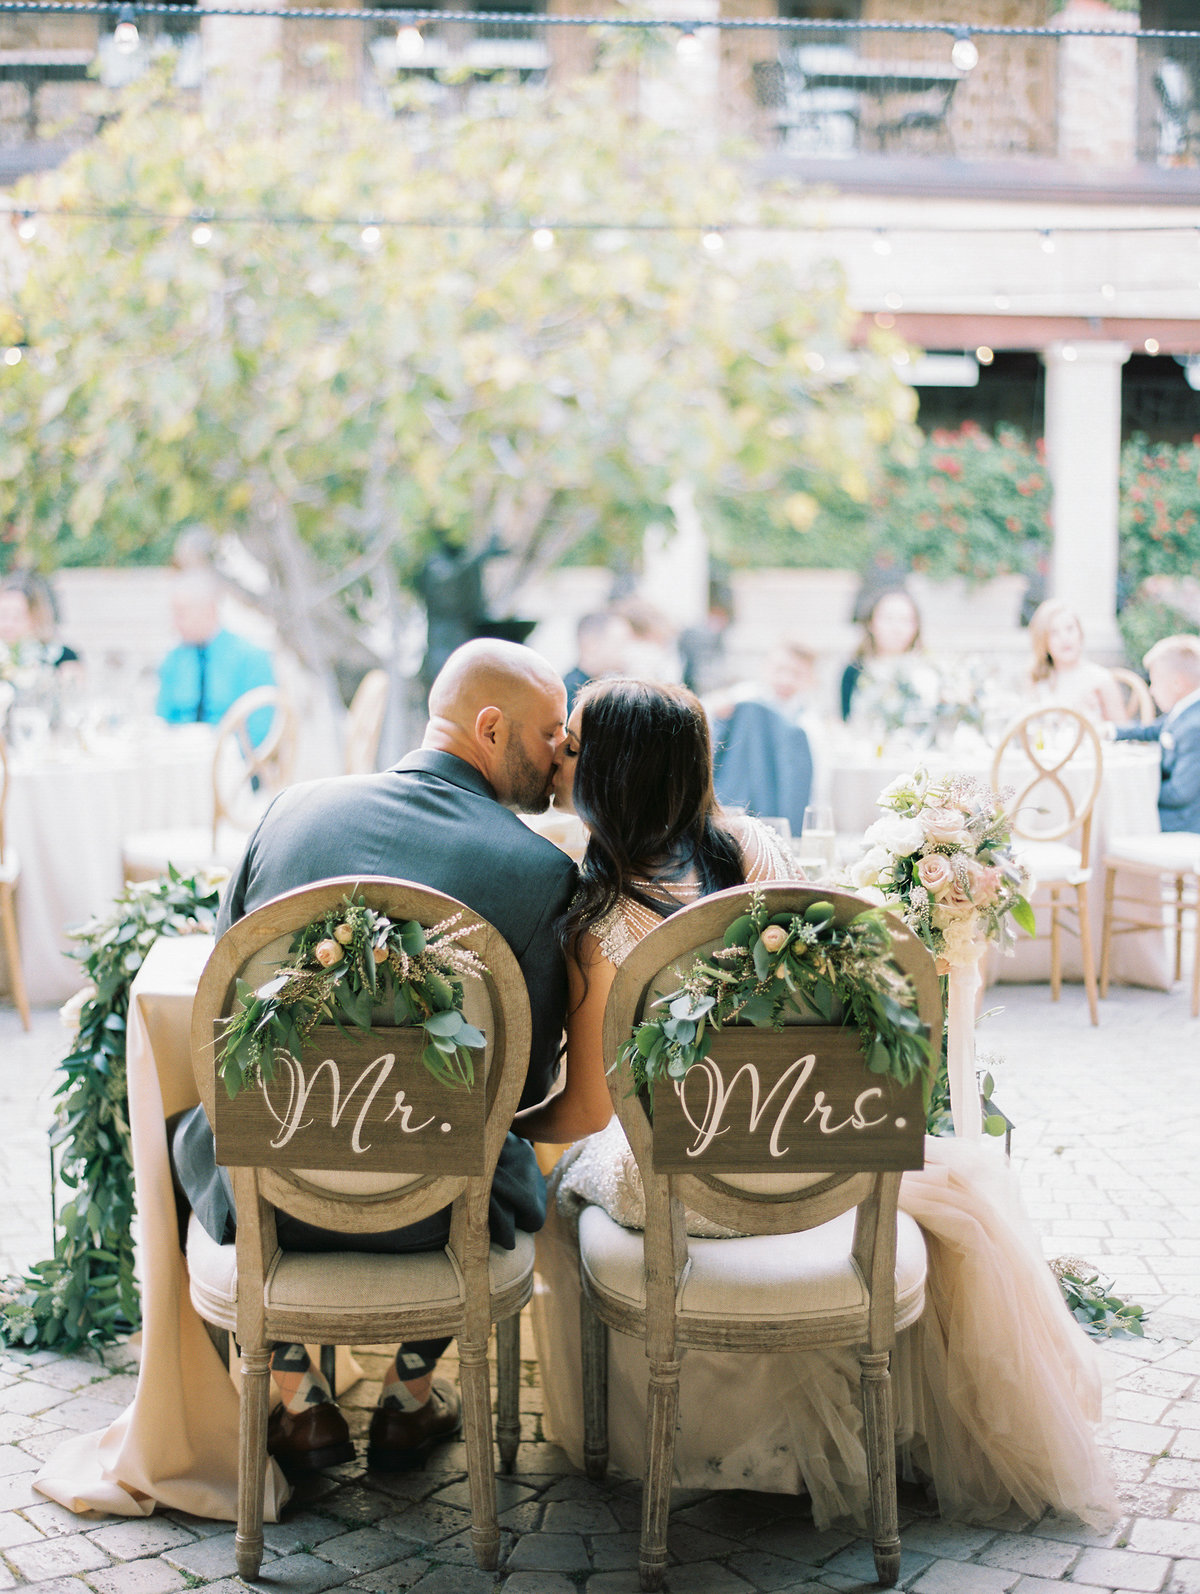 Natalie Bray Studios, Natalie Bray Photography, Southern California Wedding Photographer, Fine Art wedding, Destination Wedding Photographer, Sonoma Wedding Photographer-33